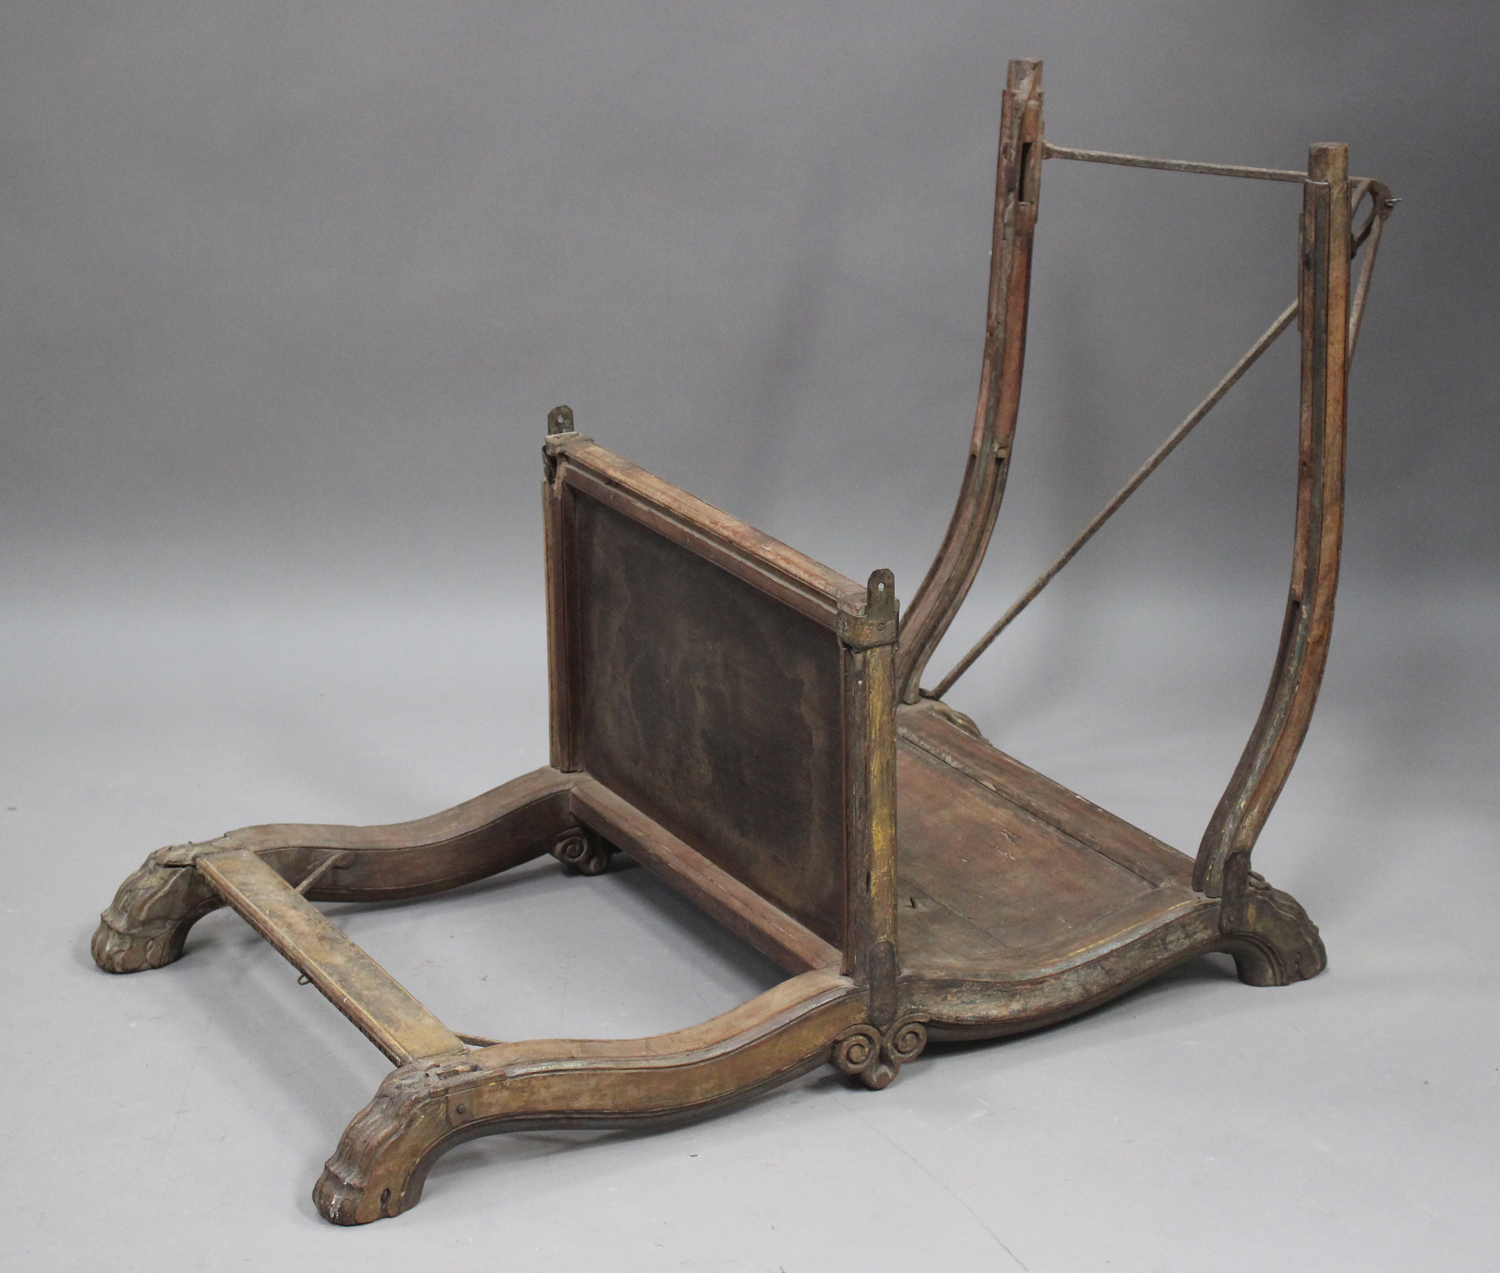 A late 19th/early 20th century Indian hardwood elephant howdah, height 70cm, length 110cm (some